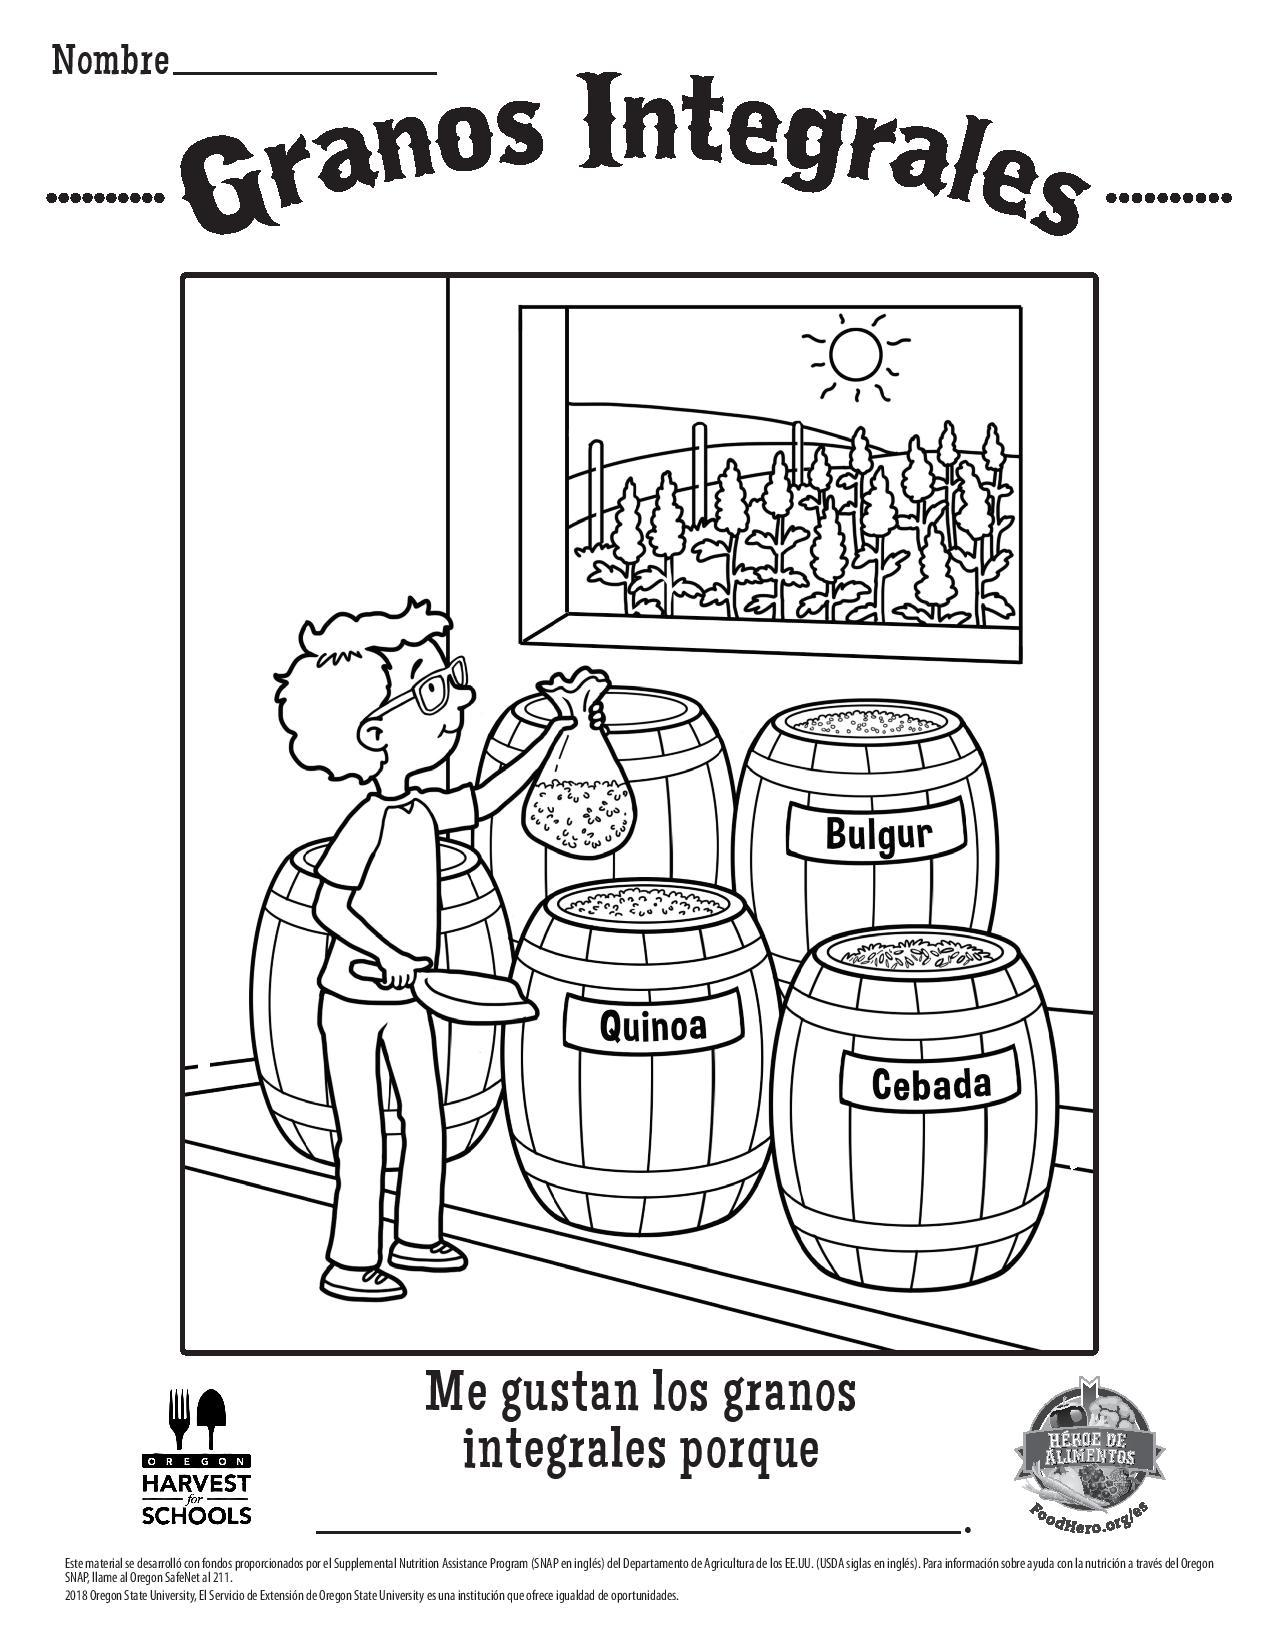 Whole Grain Coloring Sheet Spanish